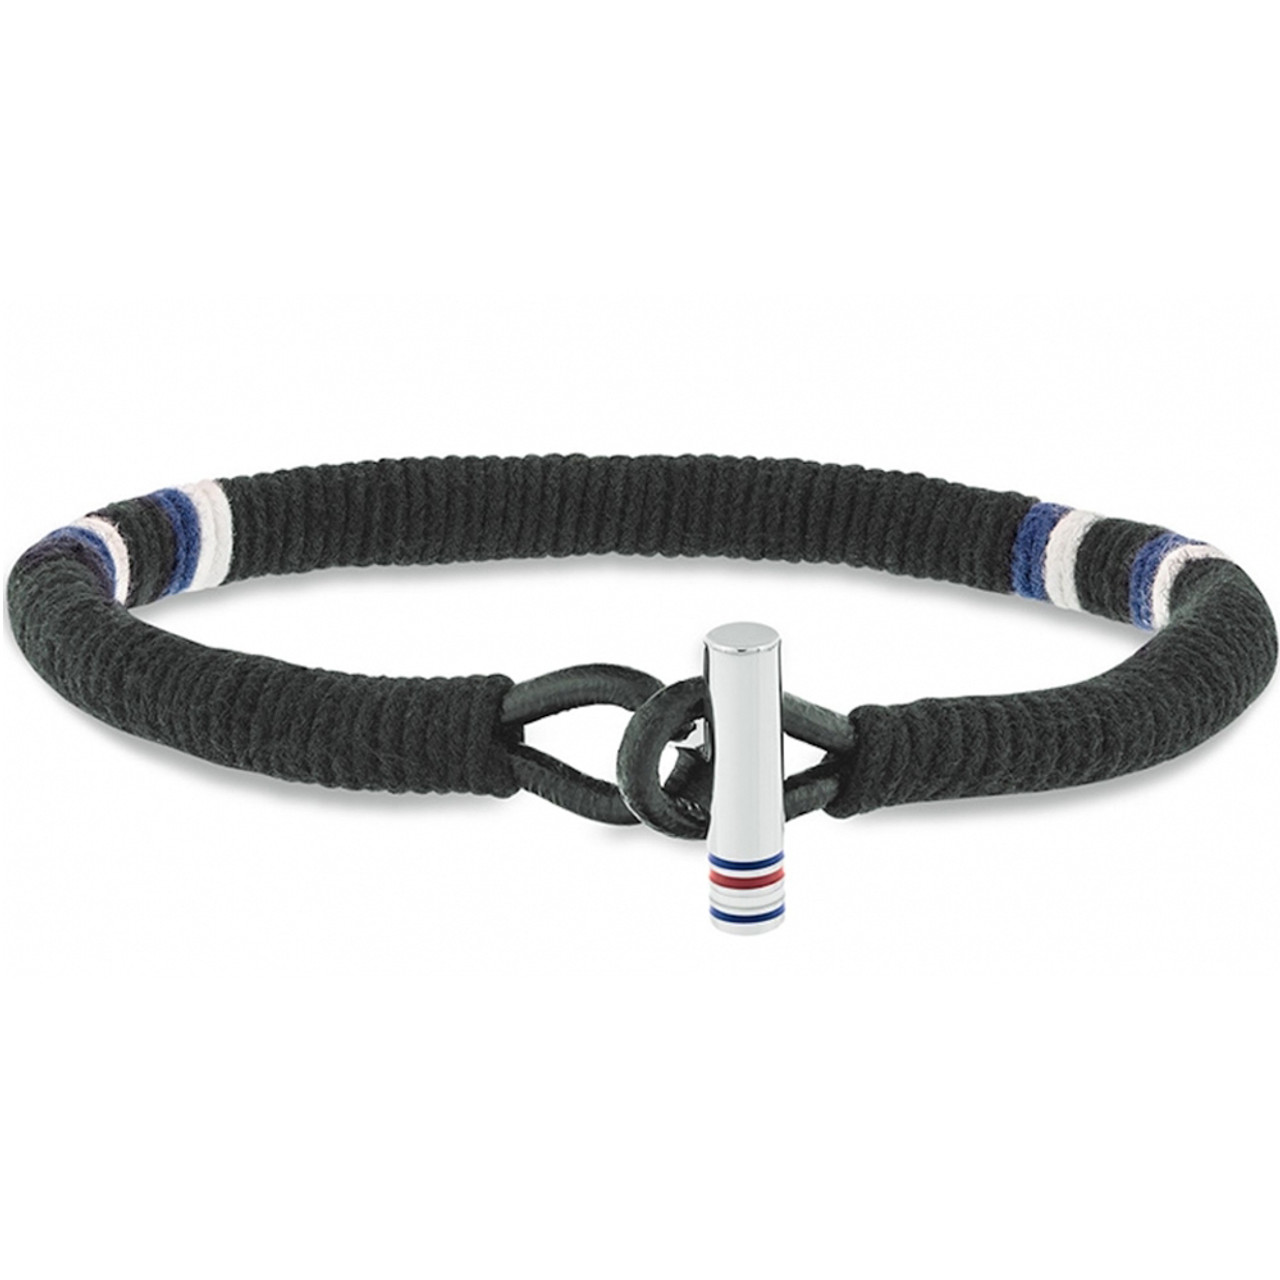 742dfaeabf77d Tommy Hilfiger Men's Casual Core Wrapped Cord Black Fabric Bracelet 2701069